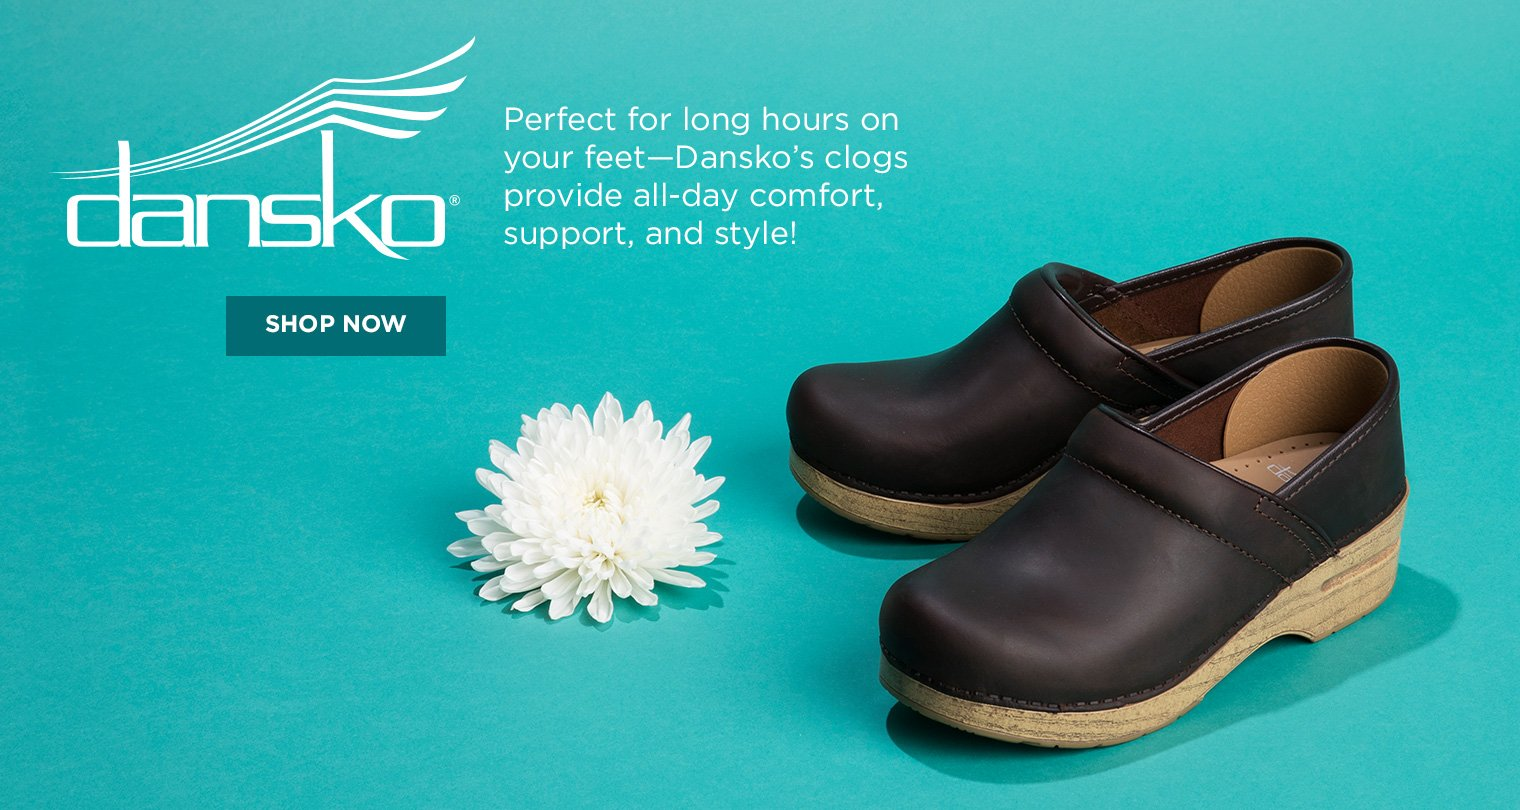 f0c98c07dd1 Dansko. Perfect for long hours on your feet